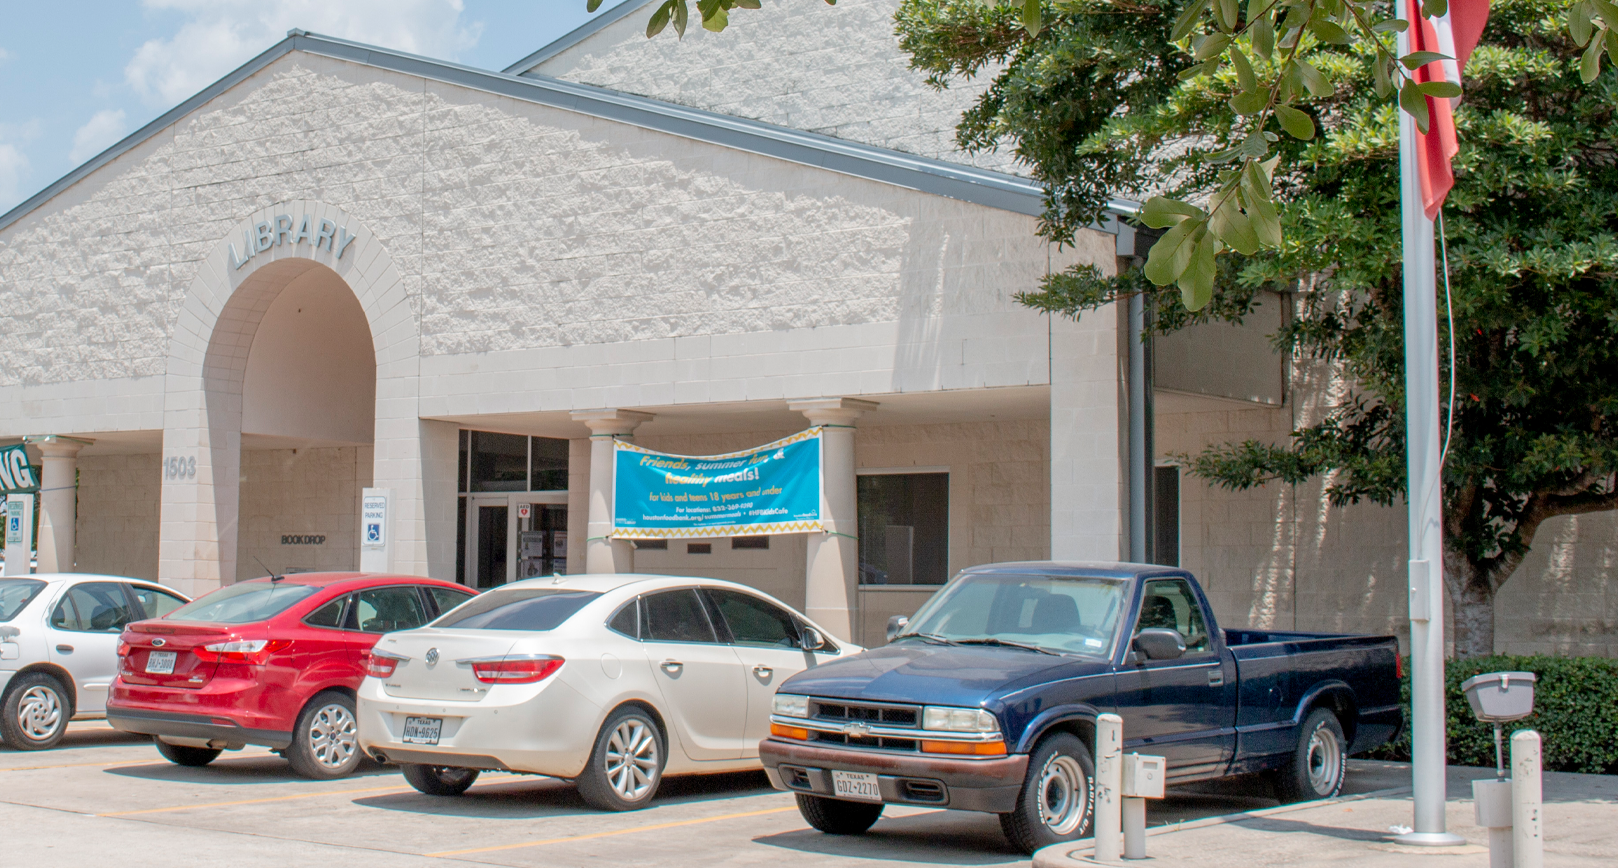 exterior of Octavia Fields Branch Library with cars parked